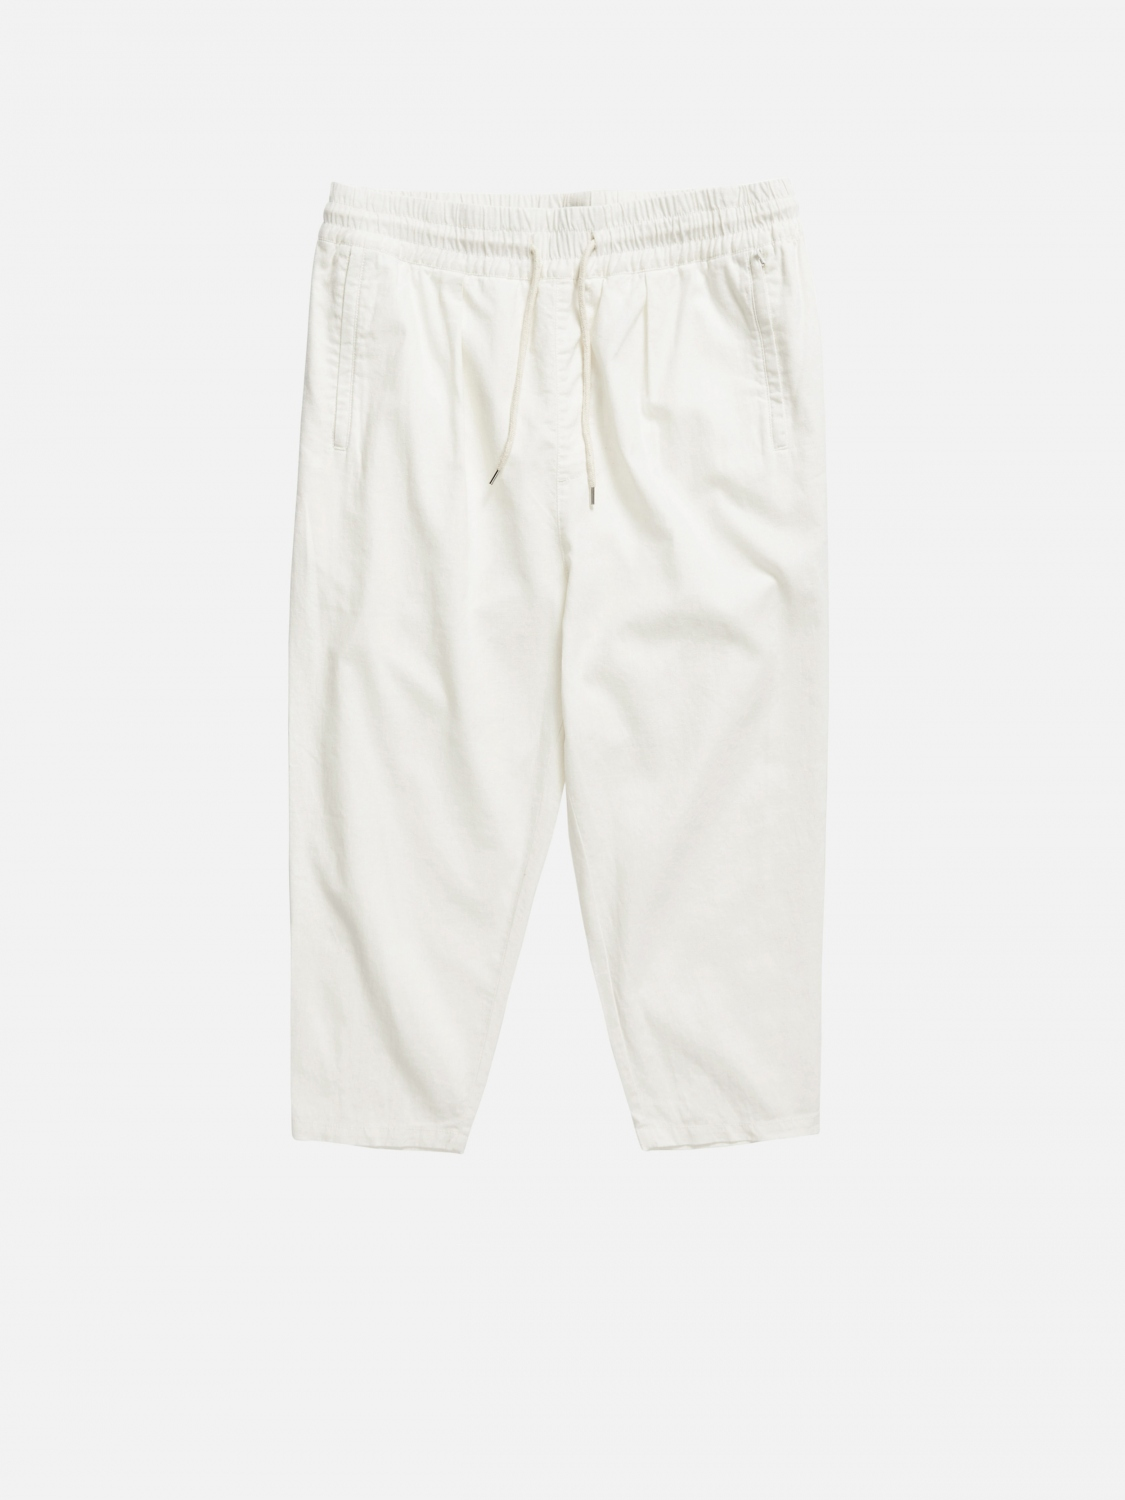 hamlin pant - off white